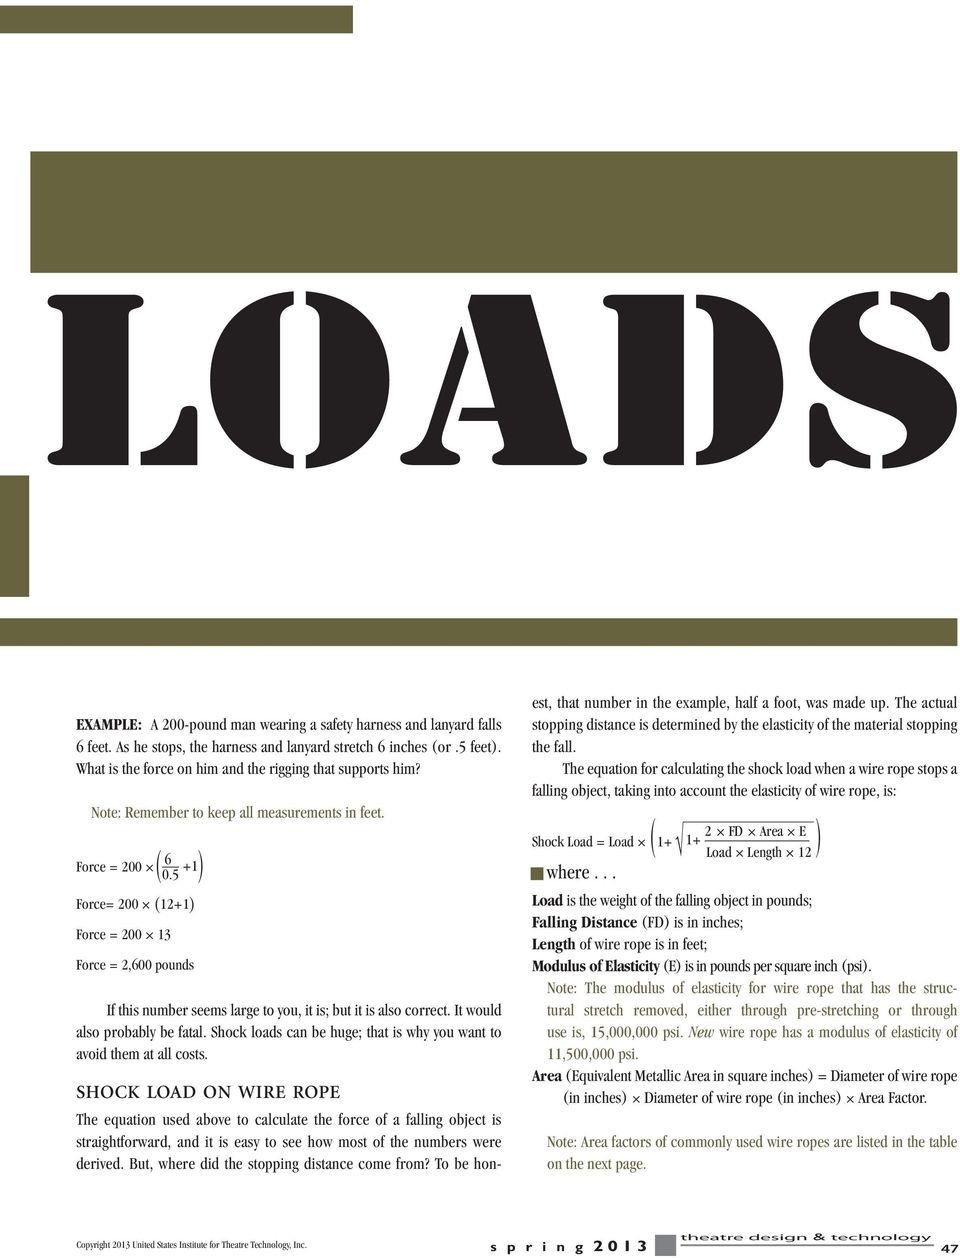 Understanding Shock Loads By Delbert L  Hall Published in